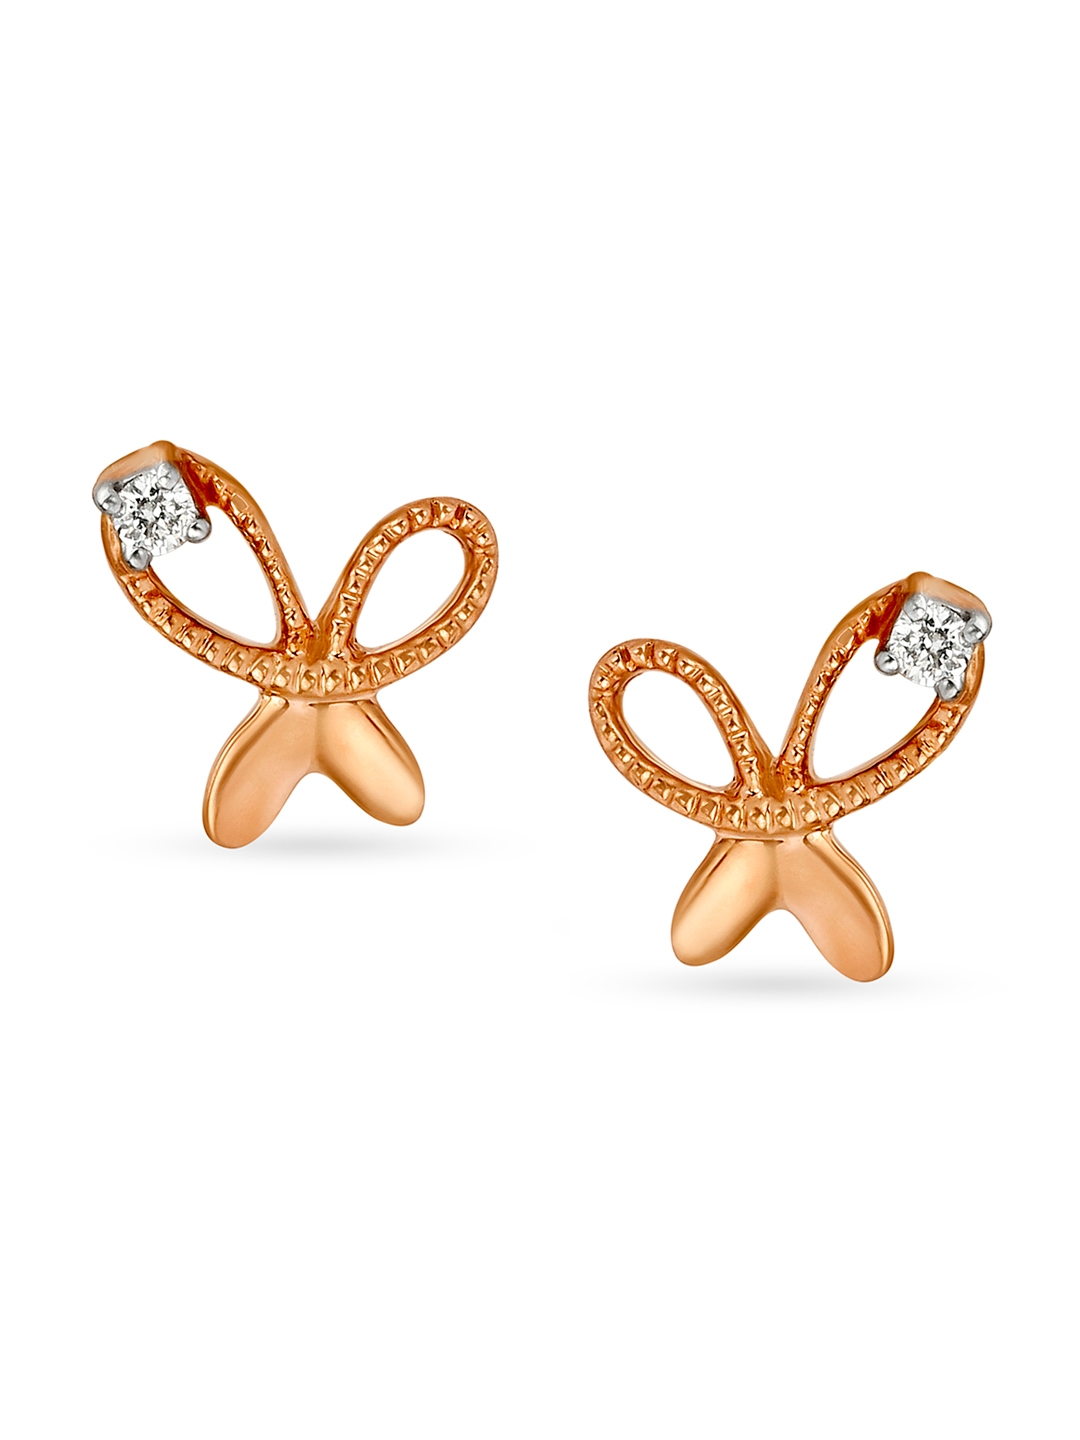 Mia by Tanishq 14KT Rose Gold Diamond Stud Earrings